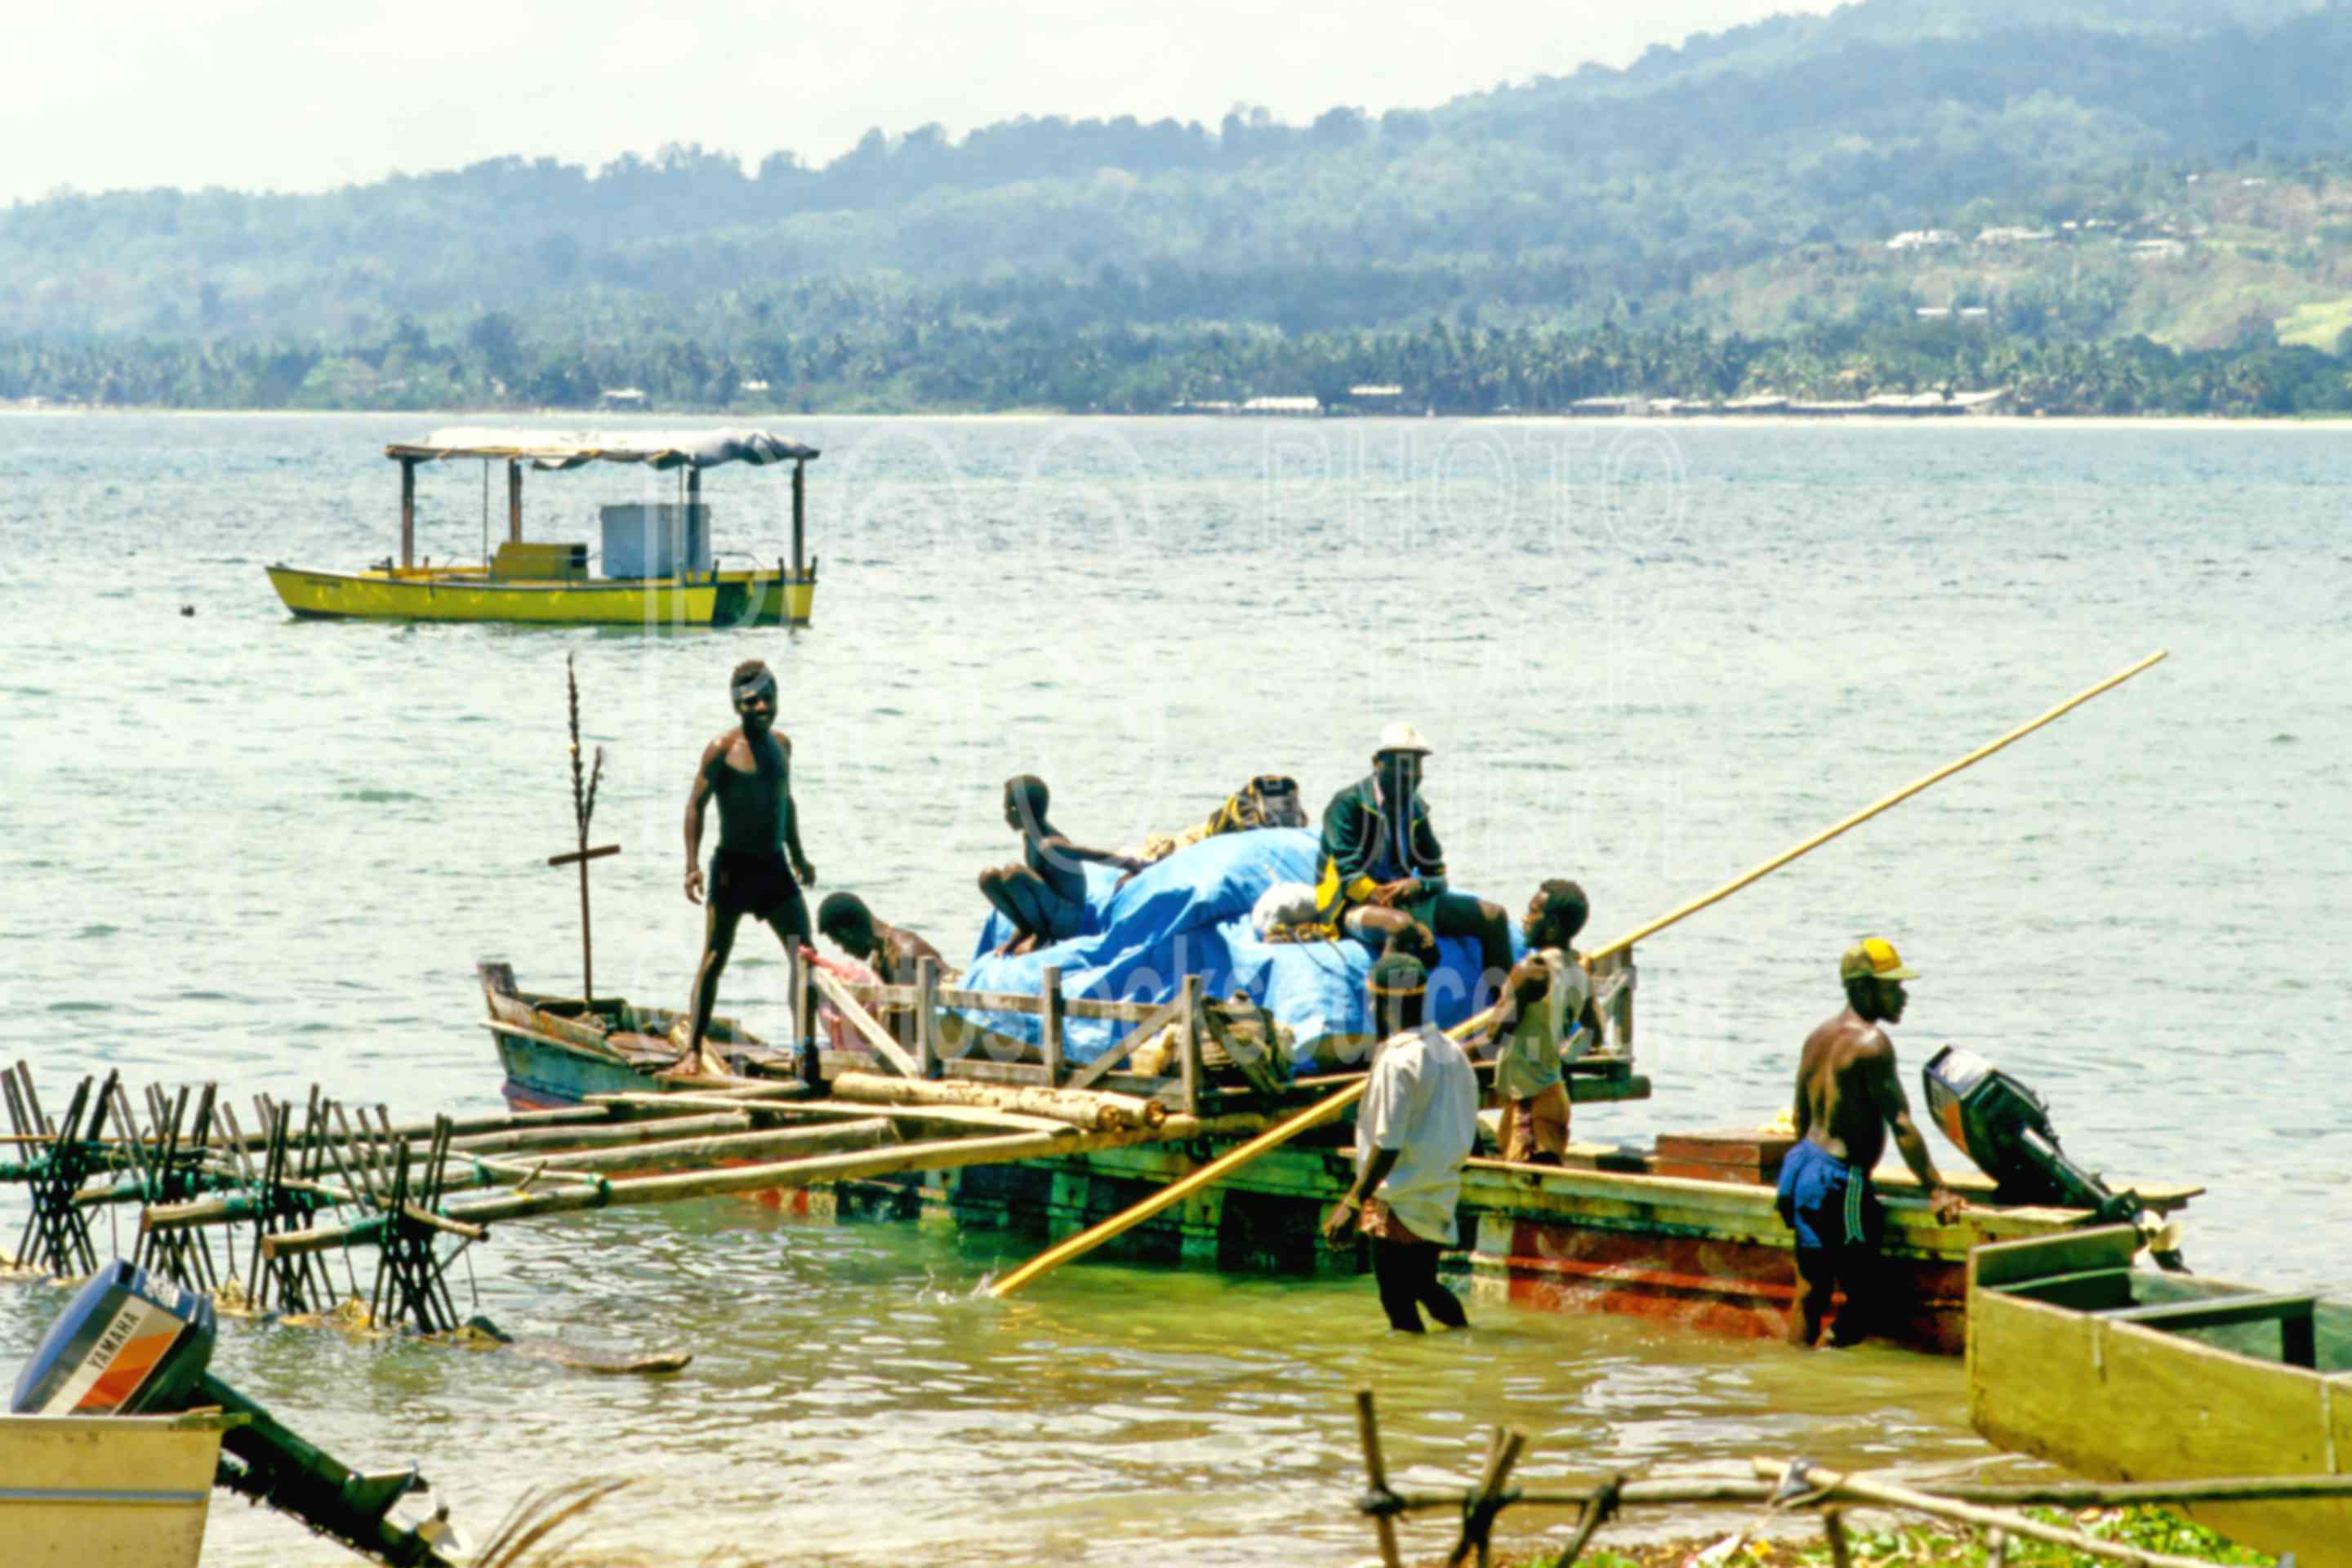 Men Working on Boat,people,boats